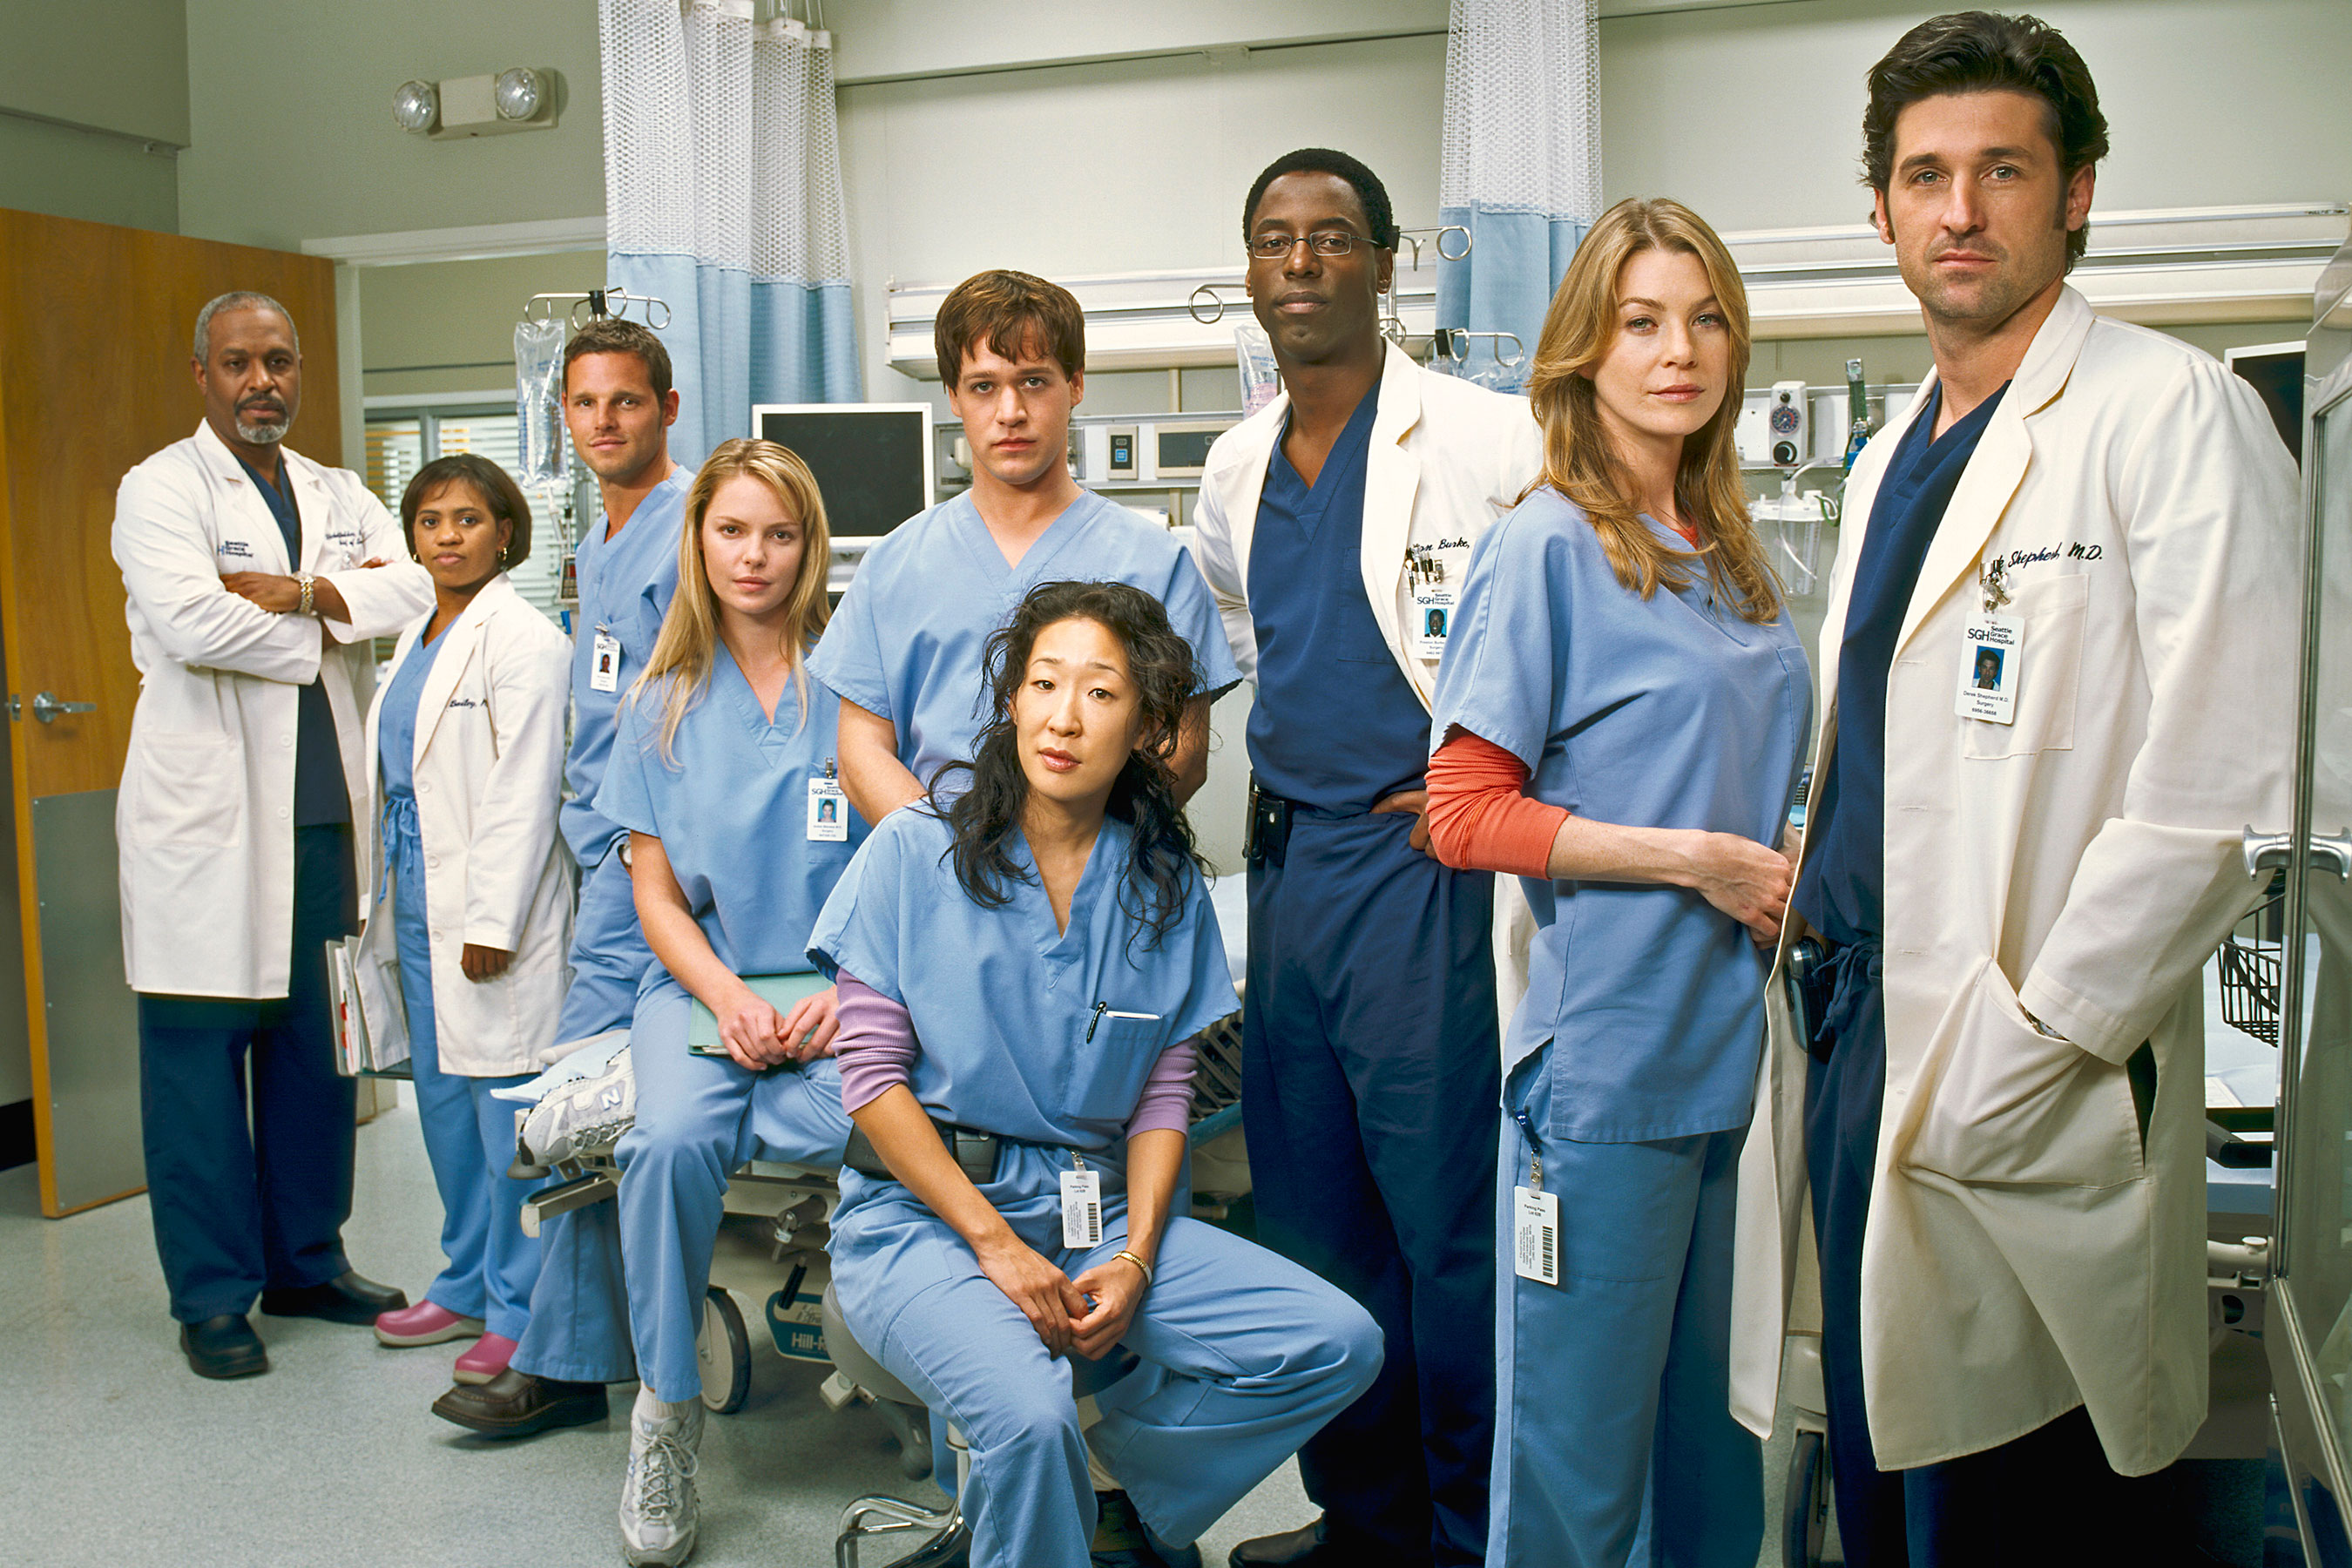 Grey's Anatomy climbs to No. 1 in Top Scripted